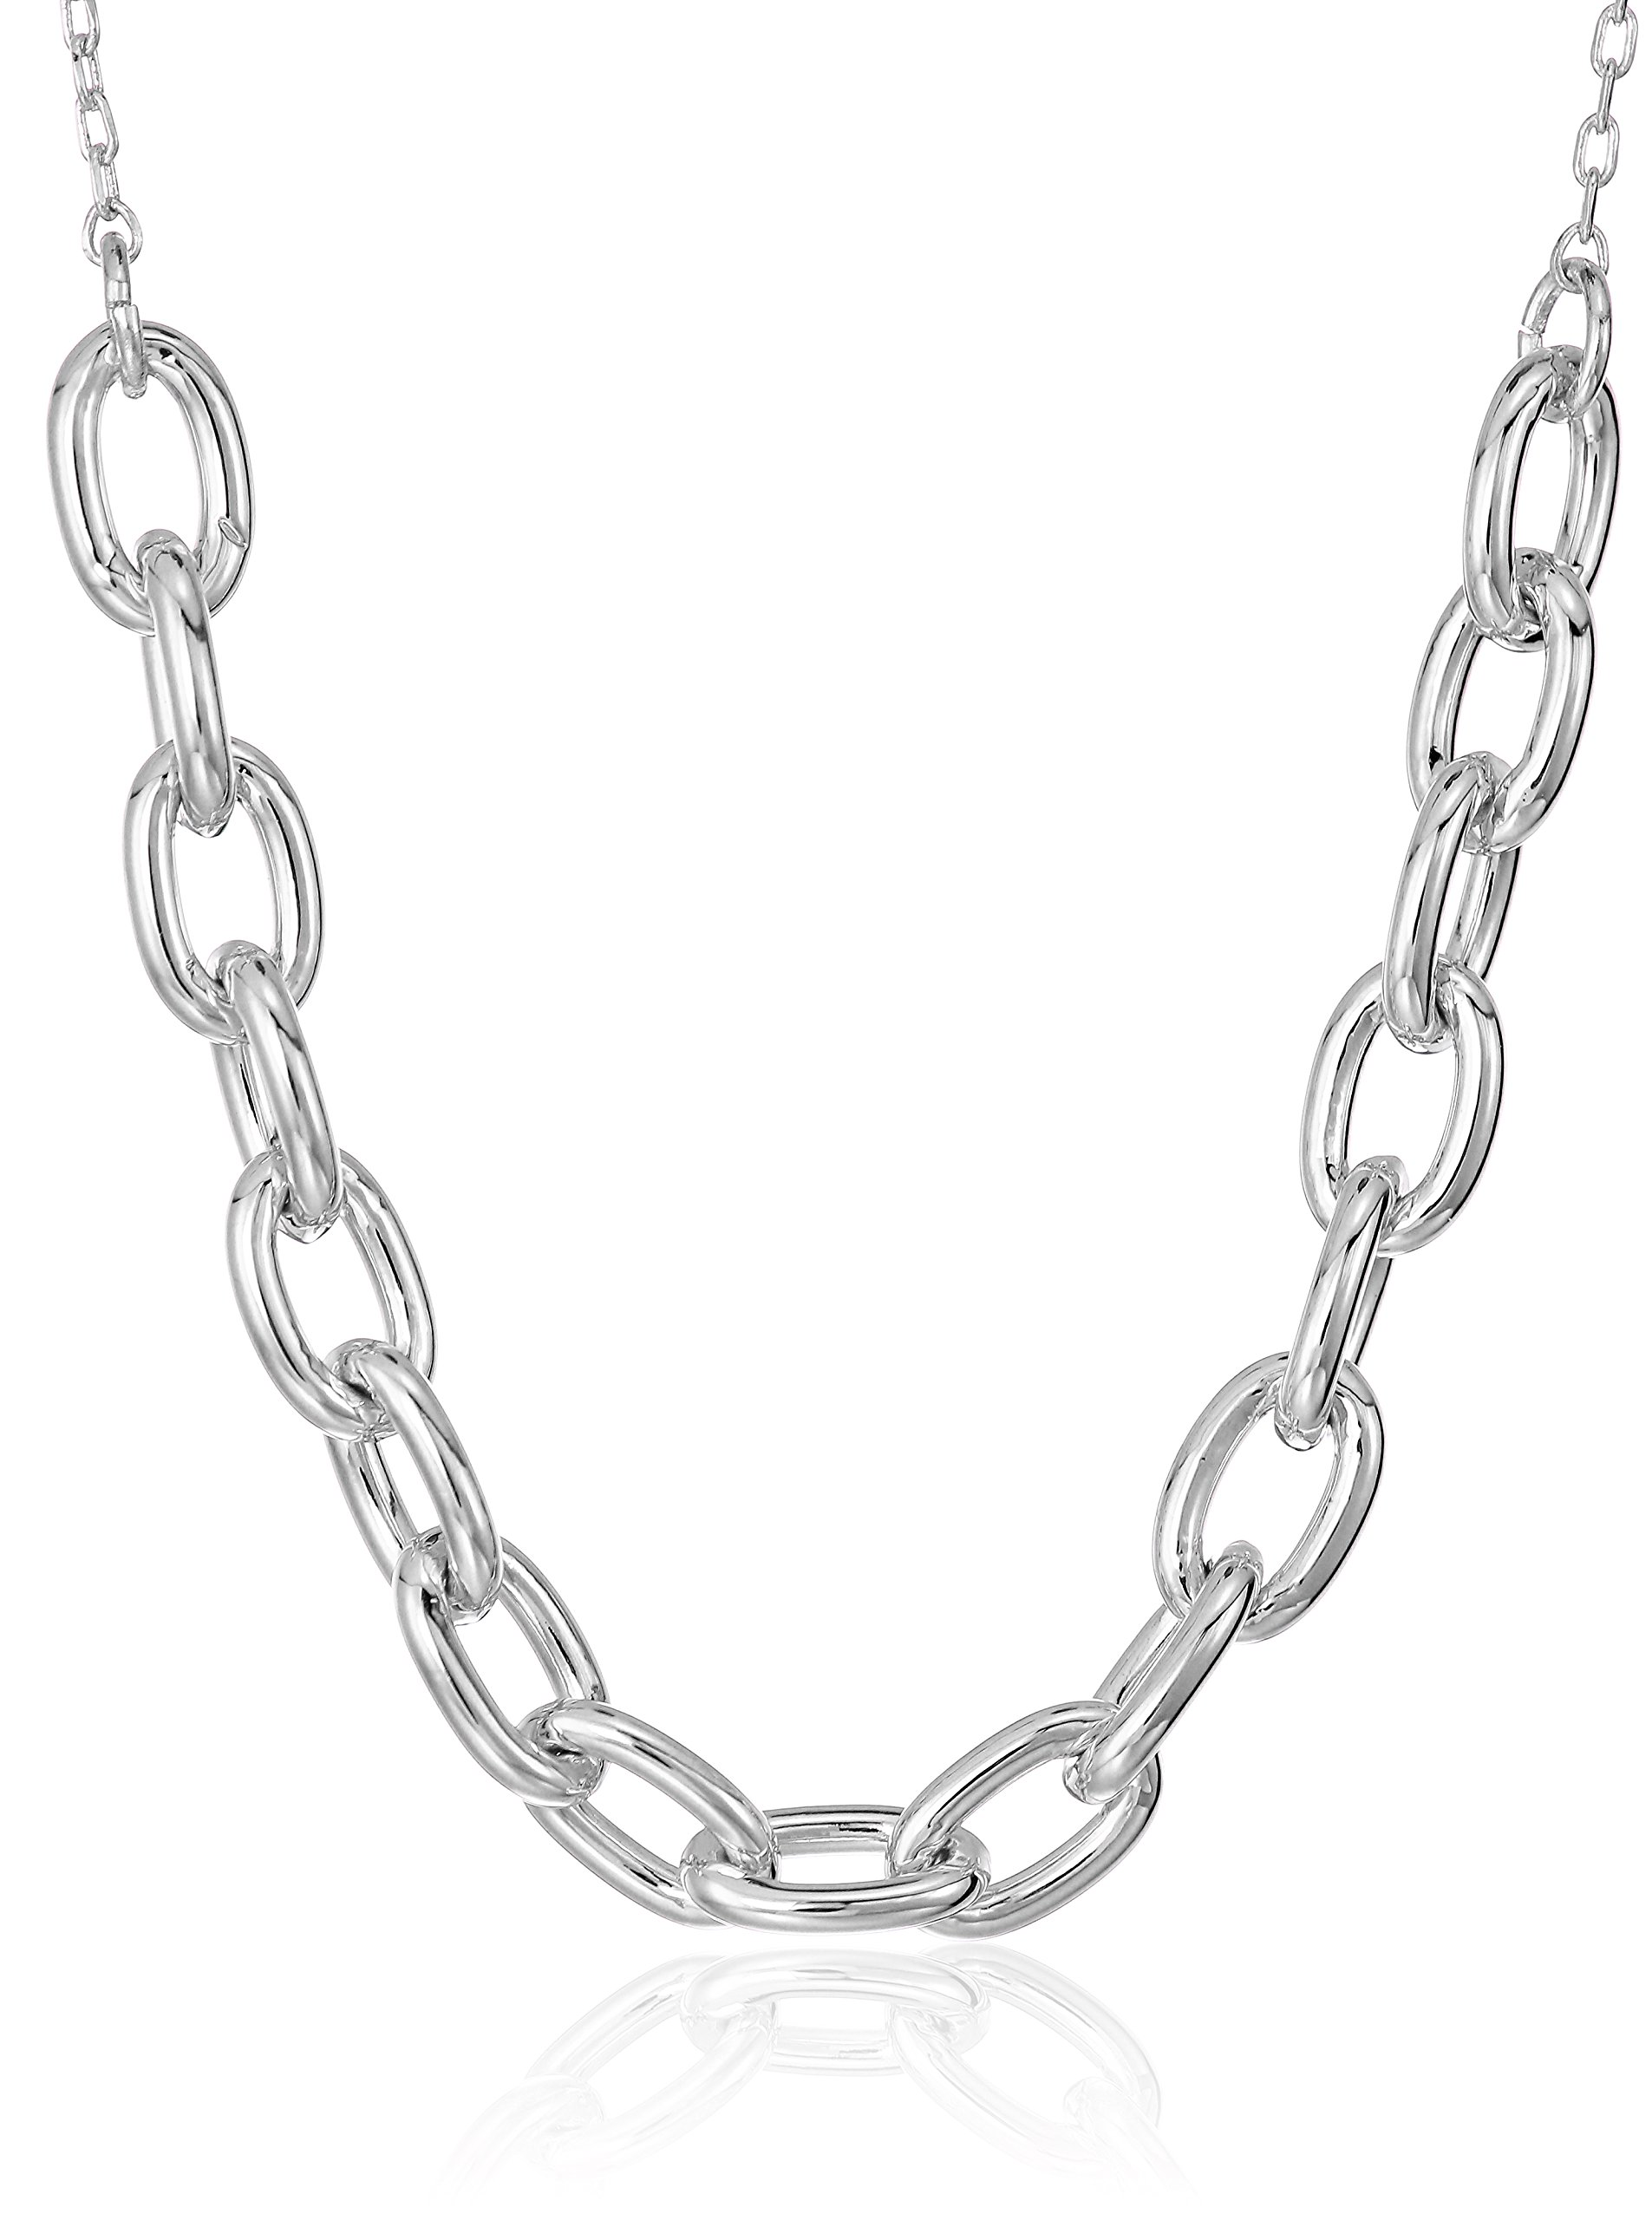 Kate Spade New York Womens Link Mini Necklace, Silver